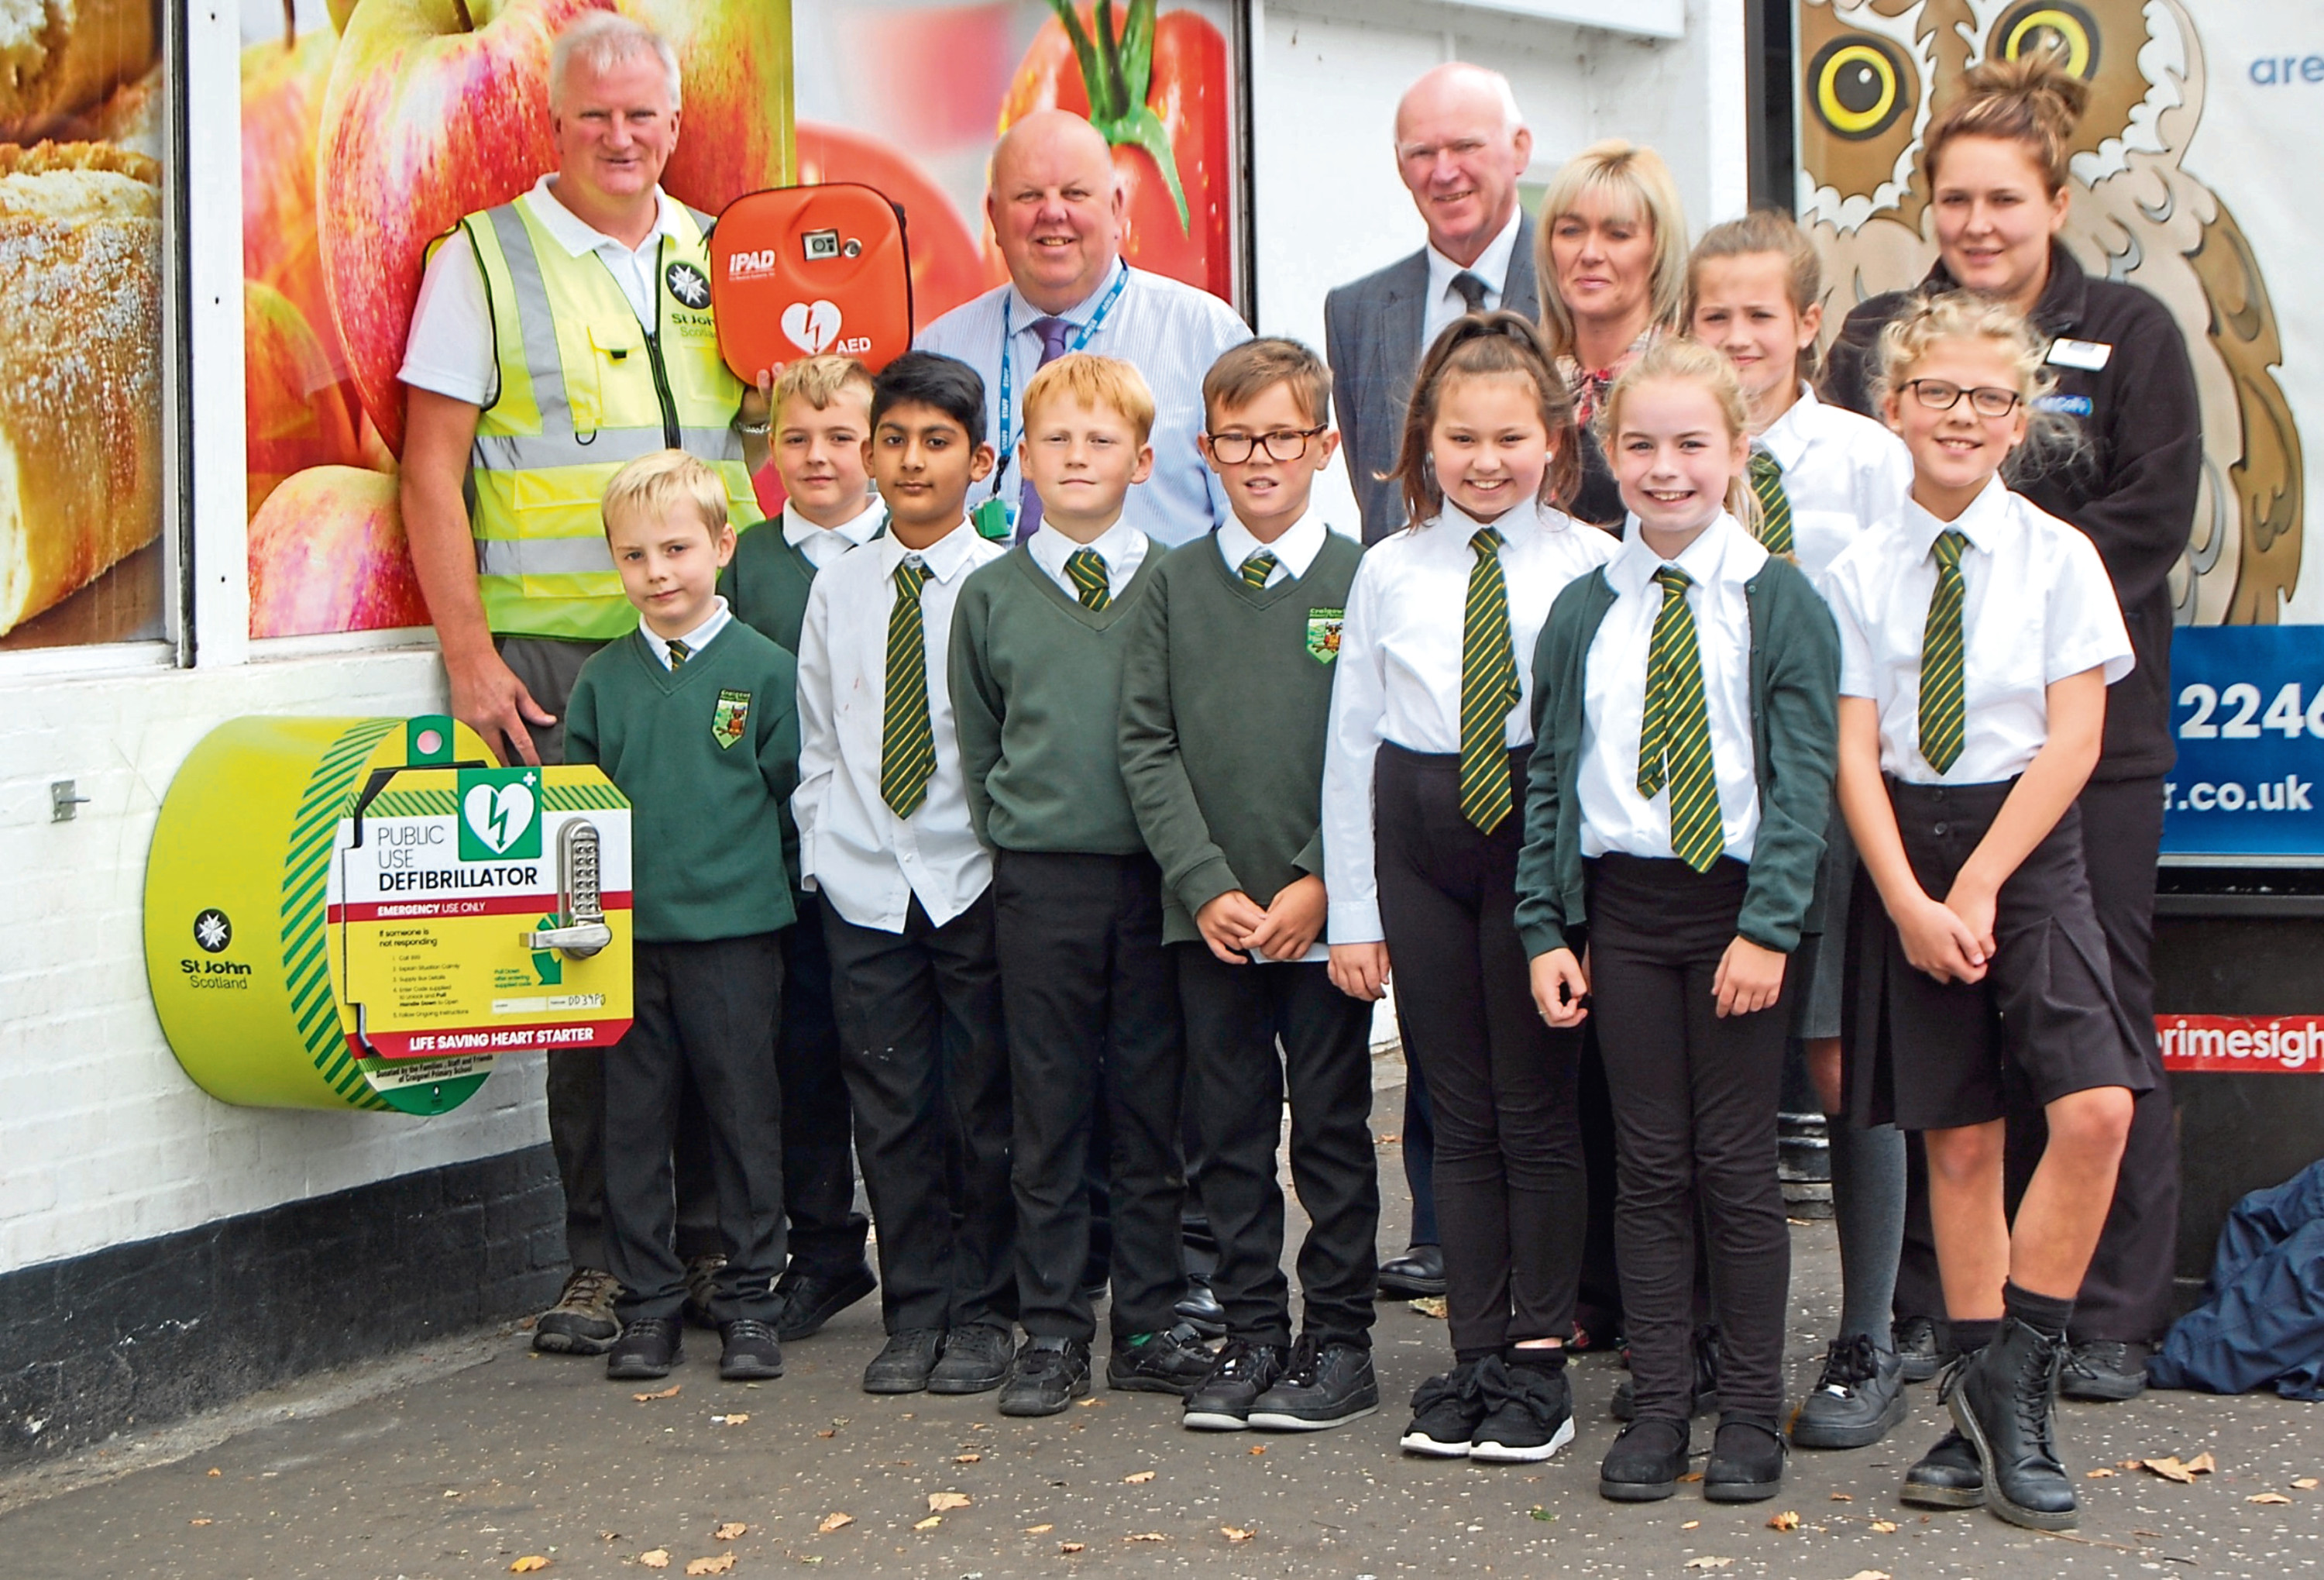 Some of the kids with the defibrillator